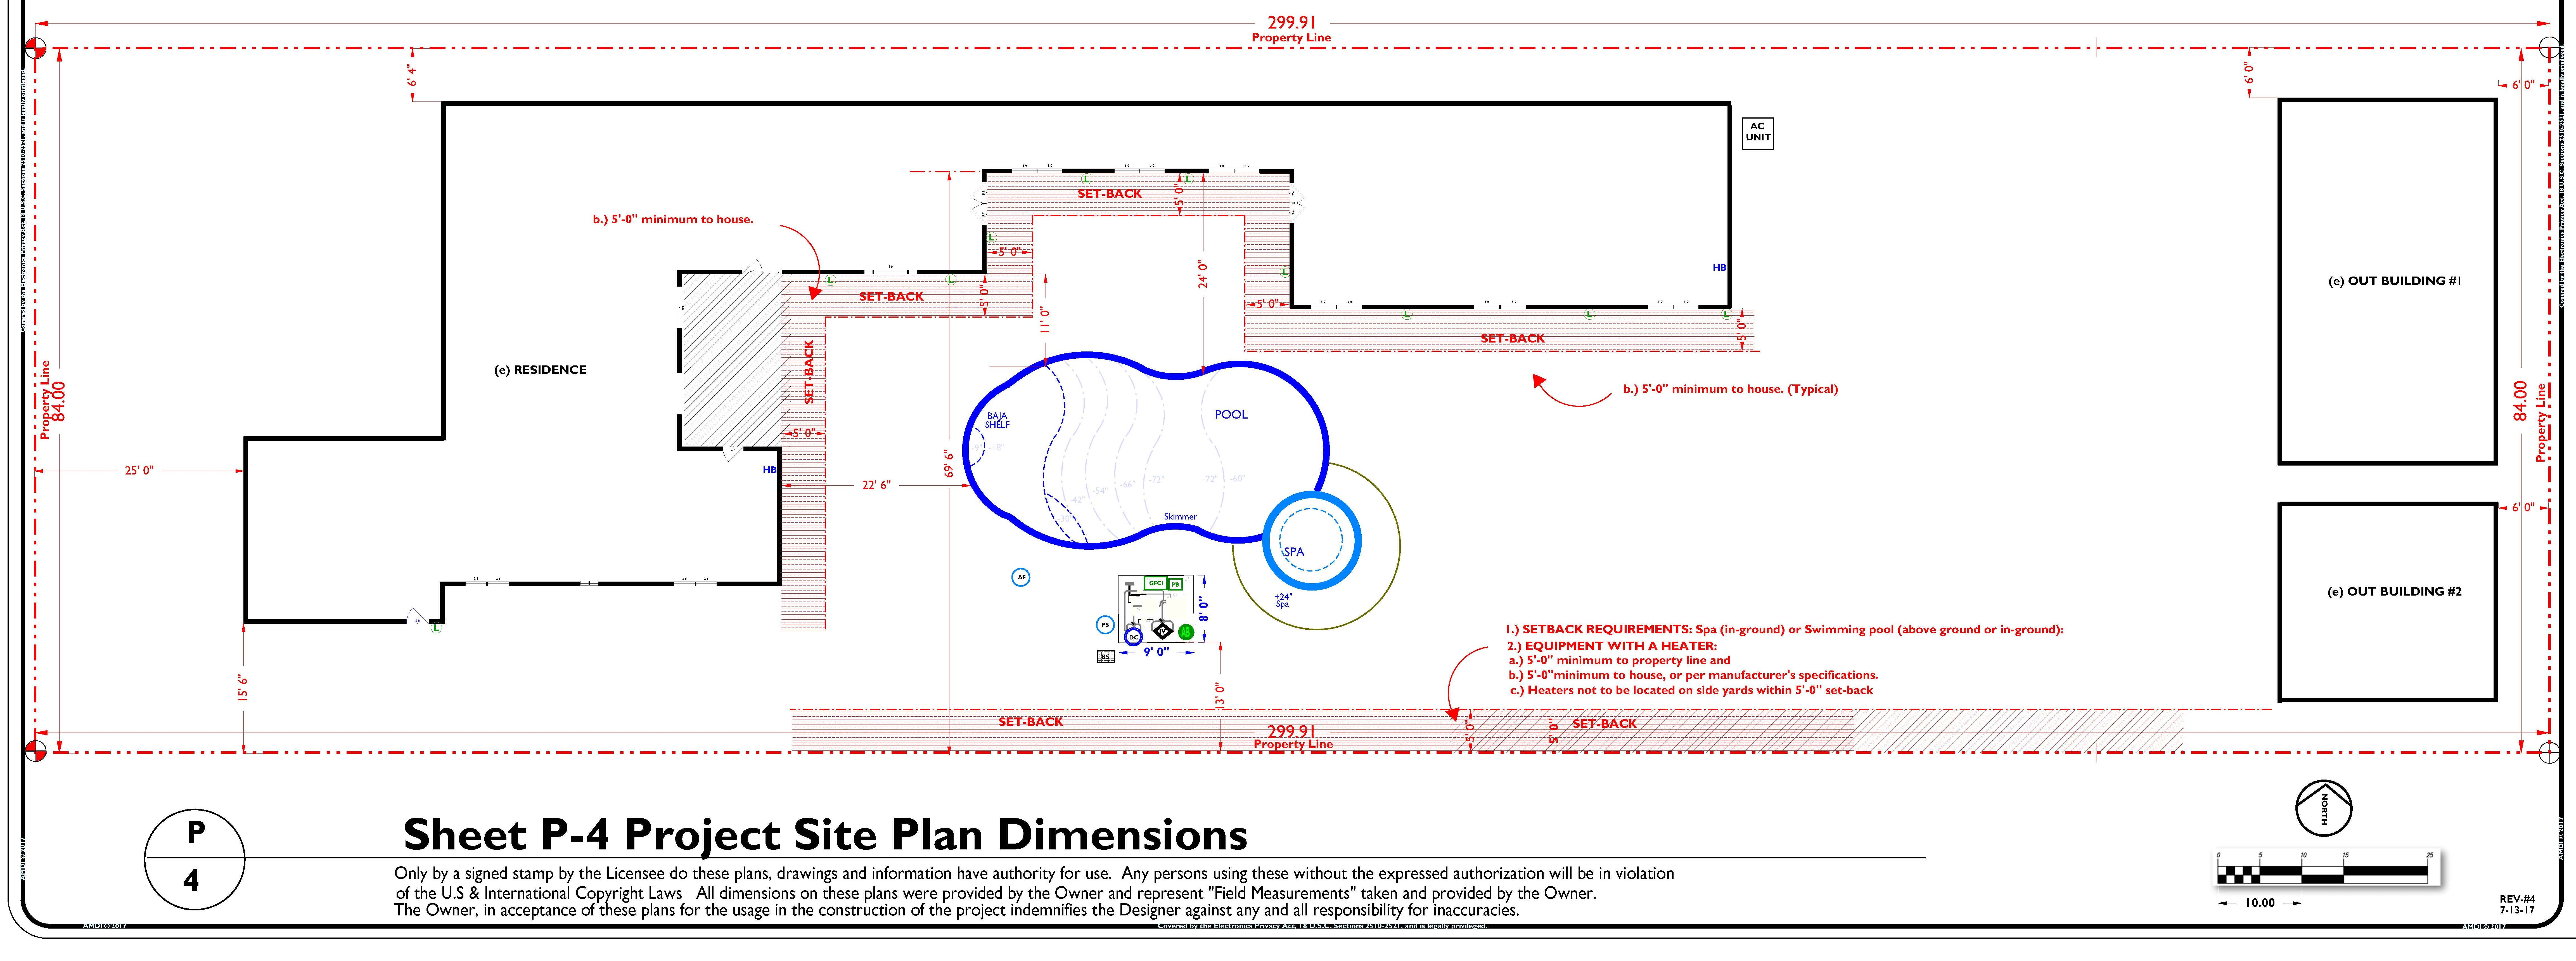 P-4 Preliminary Site Plan Dimensional Layout REV-4